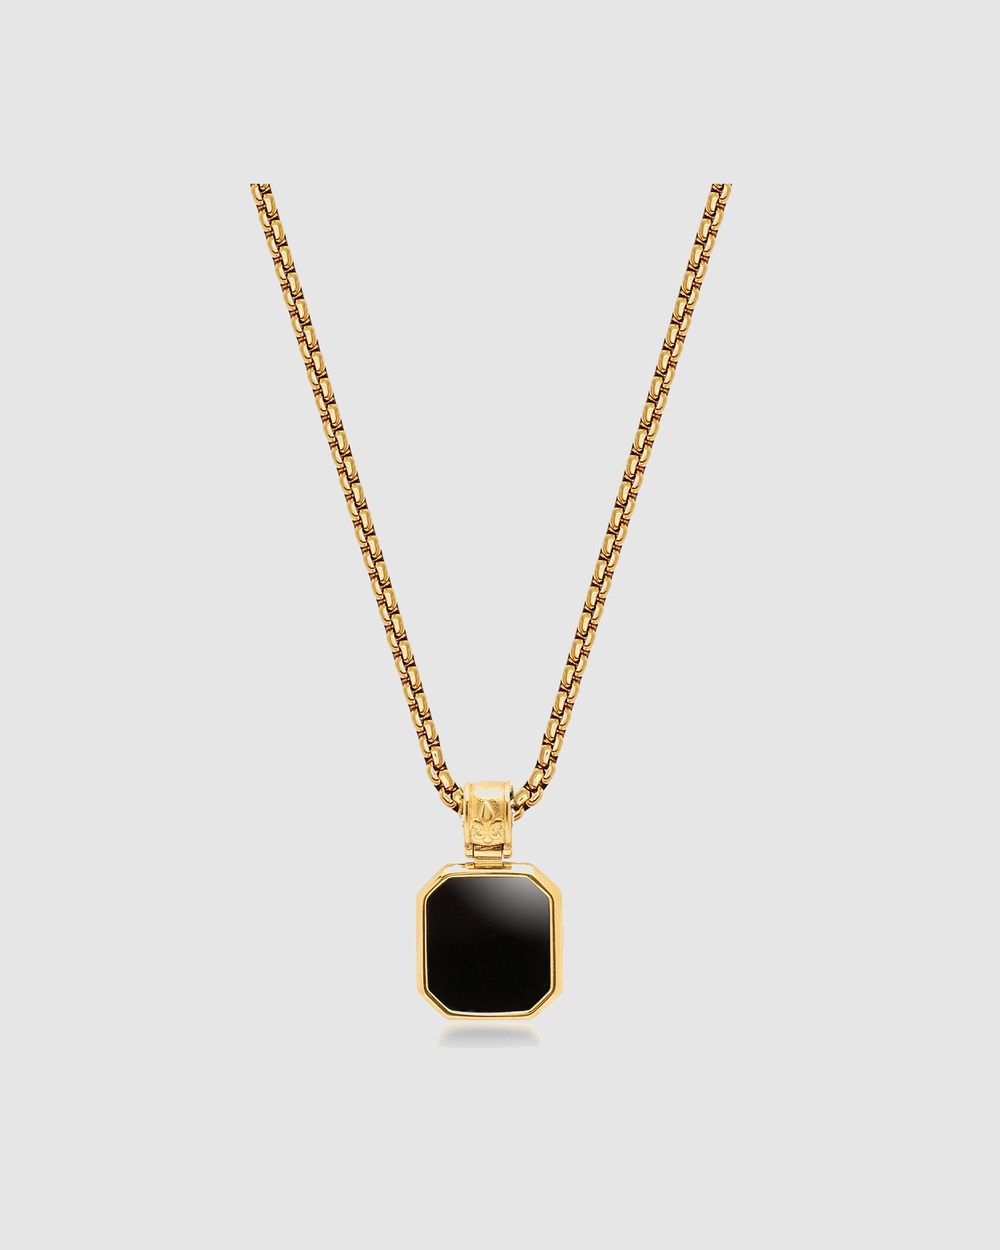 Nialaya Jewellery Men's Gold Necklace with Square Matte Onyx Pendant Gold